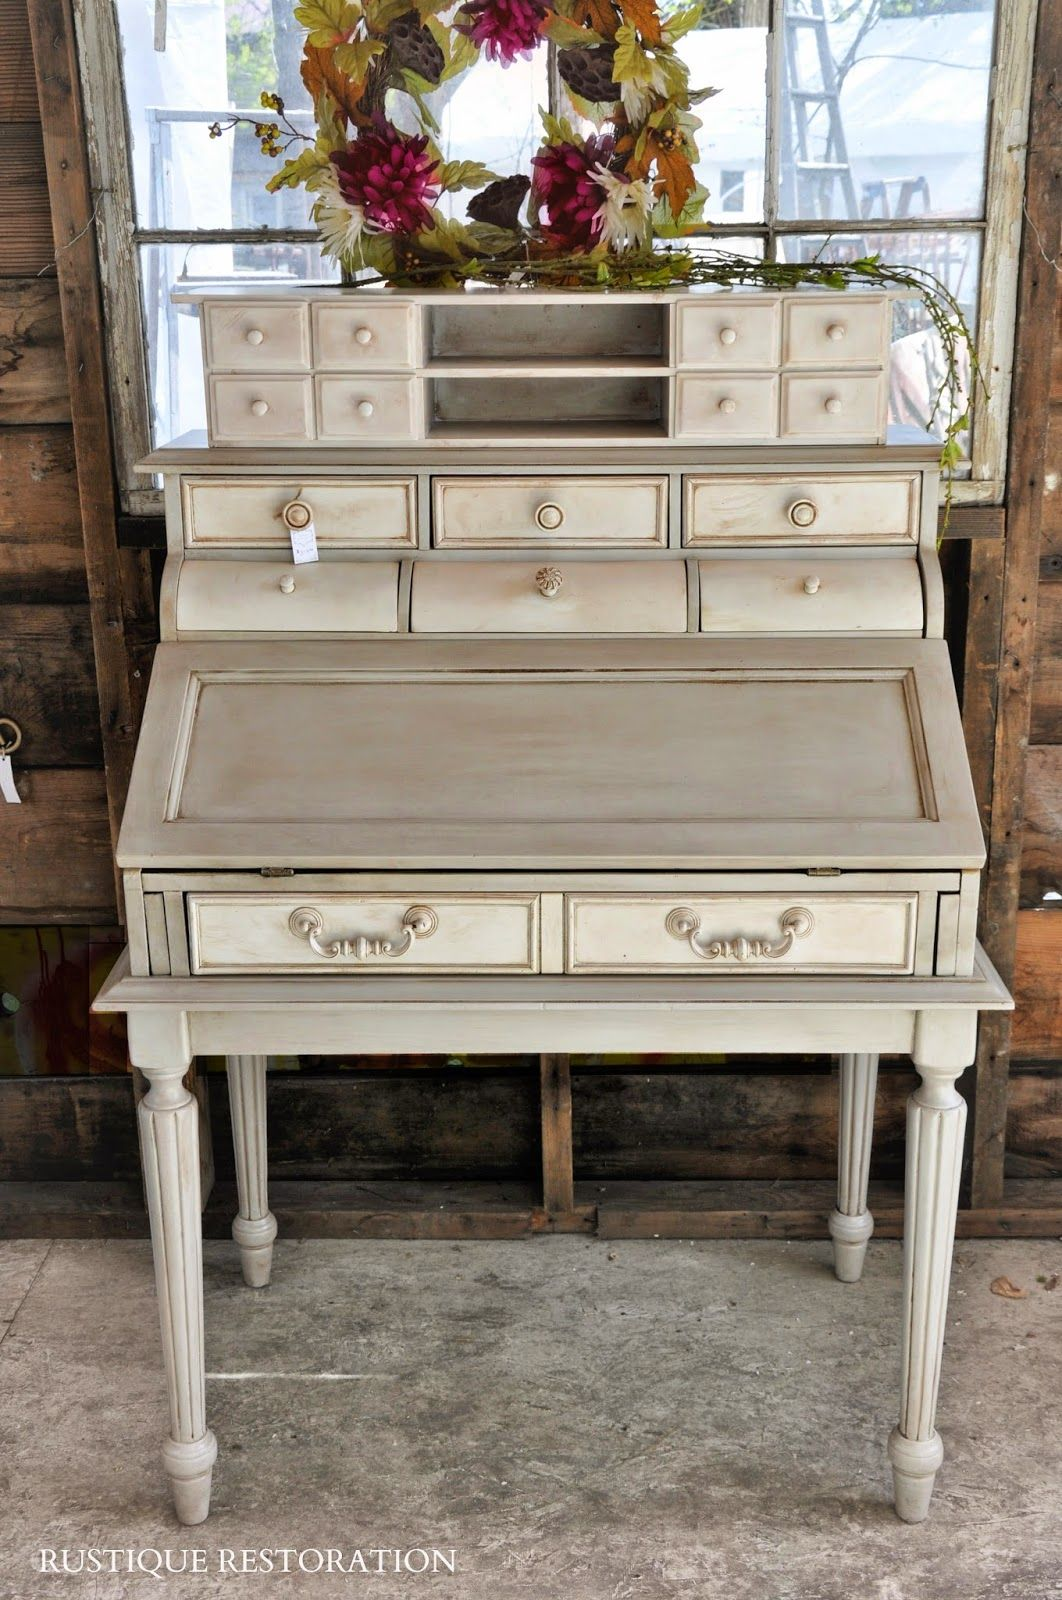 Rustique Restoration: French Gray and Cream Secretary Desk. French Country, Vintage  Furniture. DIY - Rustique Restoration: French Gray And Cream Secretary Desk. French